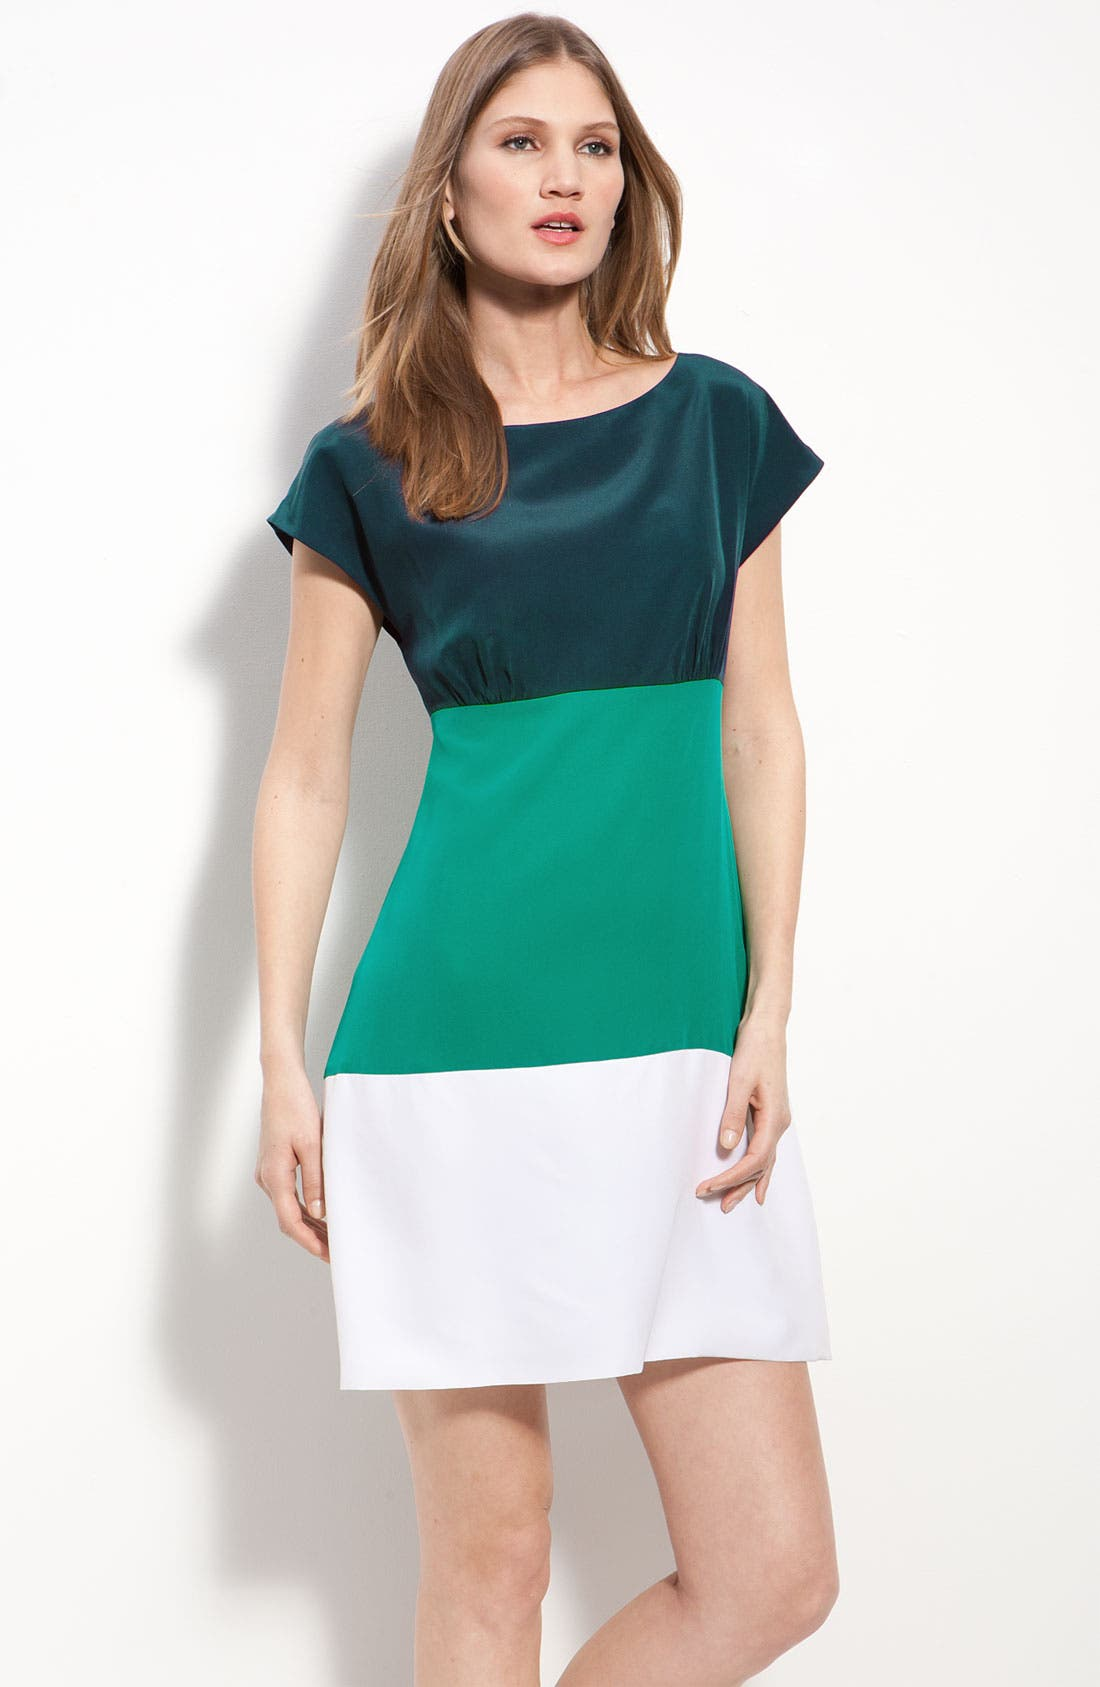 ELIZA J, Colorblock Silk Crêpe de Chine Dress, Main thumbnail 1, color, 400